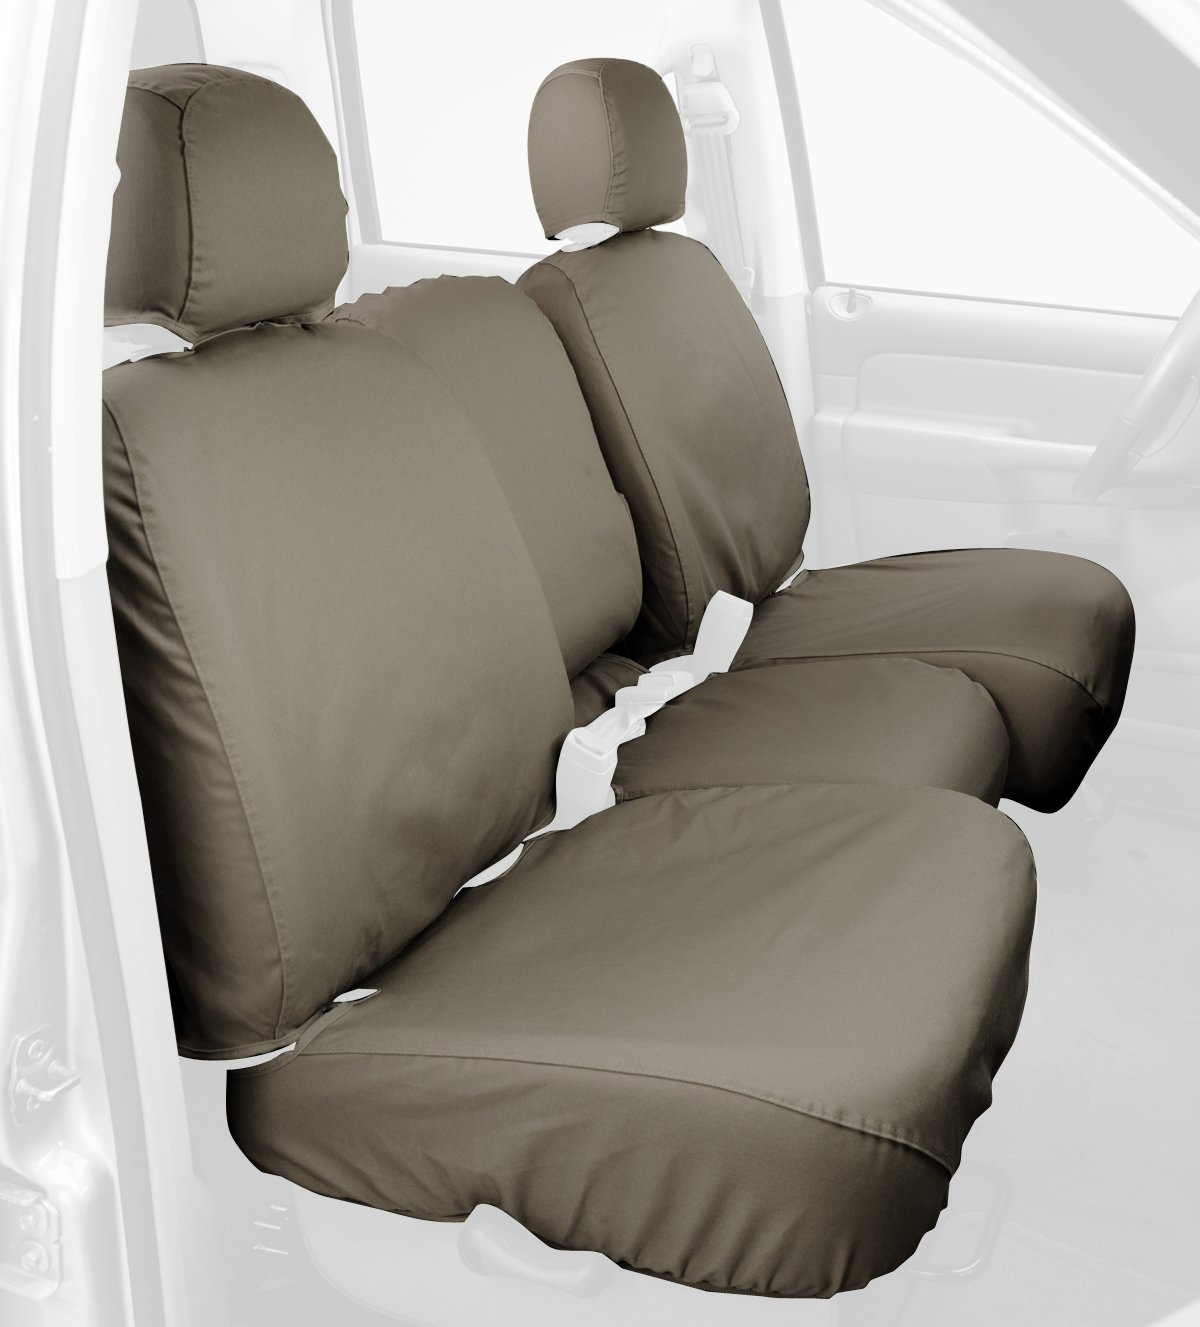 Covercraft SS2388PCCH Custom-Fit Front Bucket SeatSaver Seat Covers Polycotton Fabric Charcoal Black